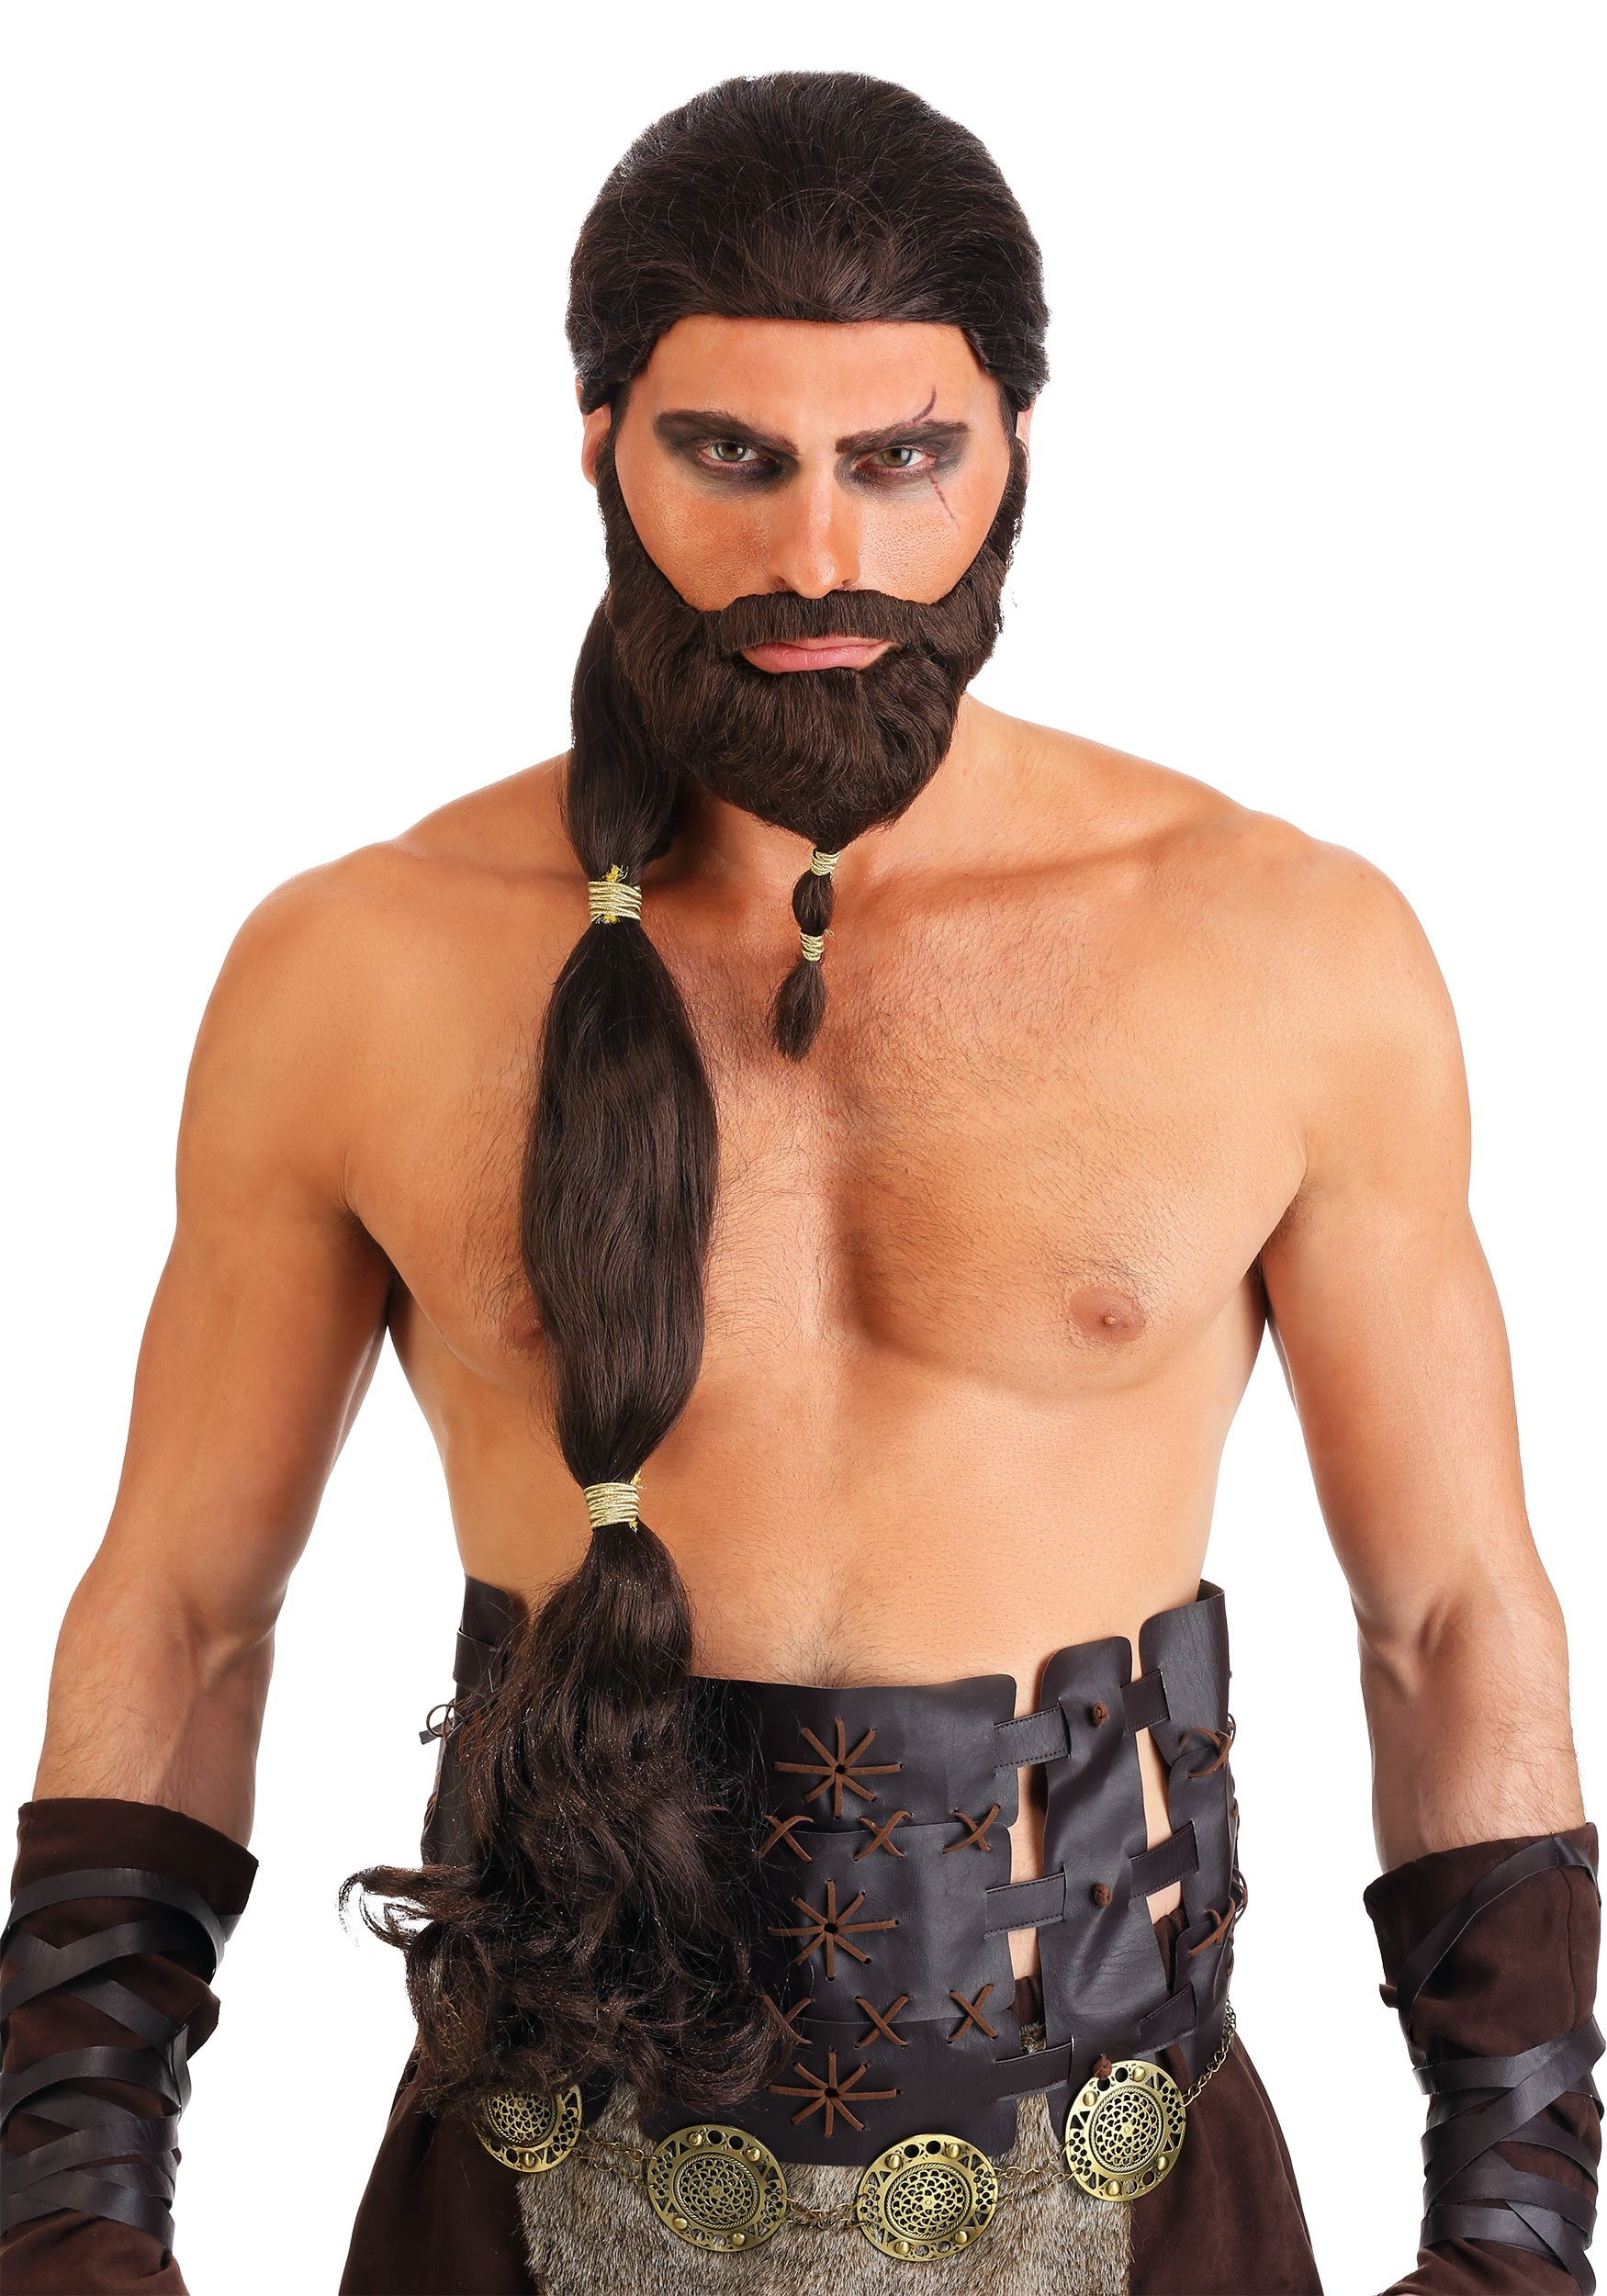 Game of Thrones Adult Costume Accessory Khal Drogo Arm Band /& Wrist Guard